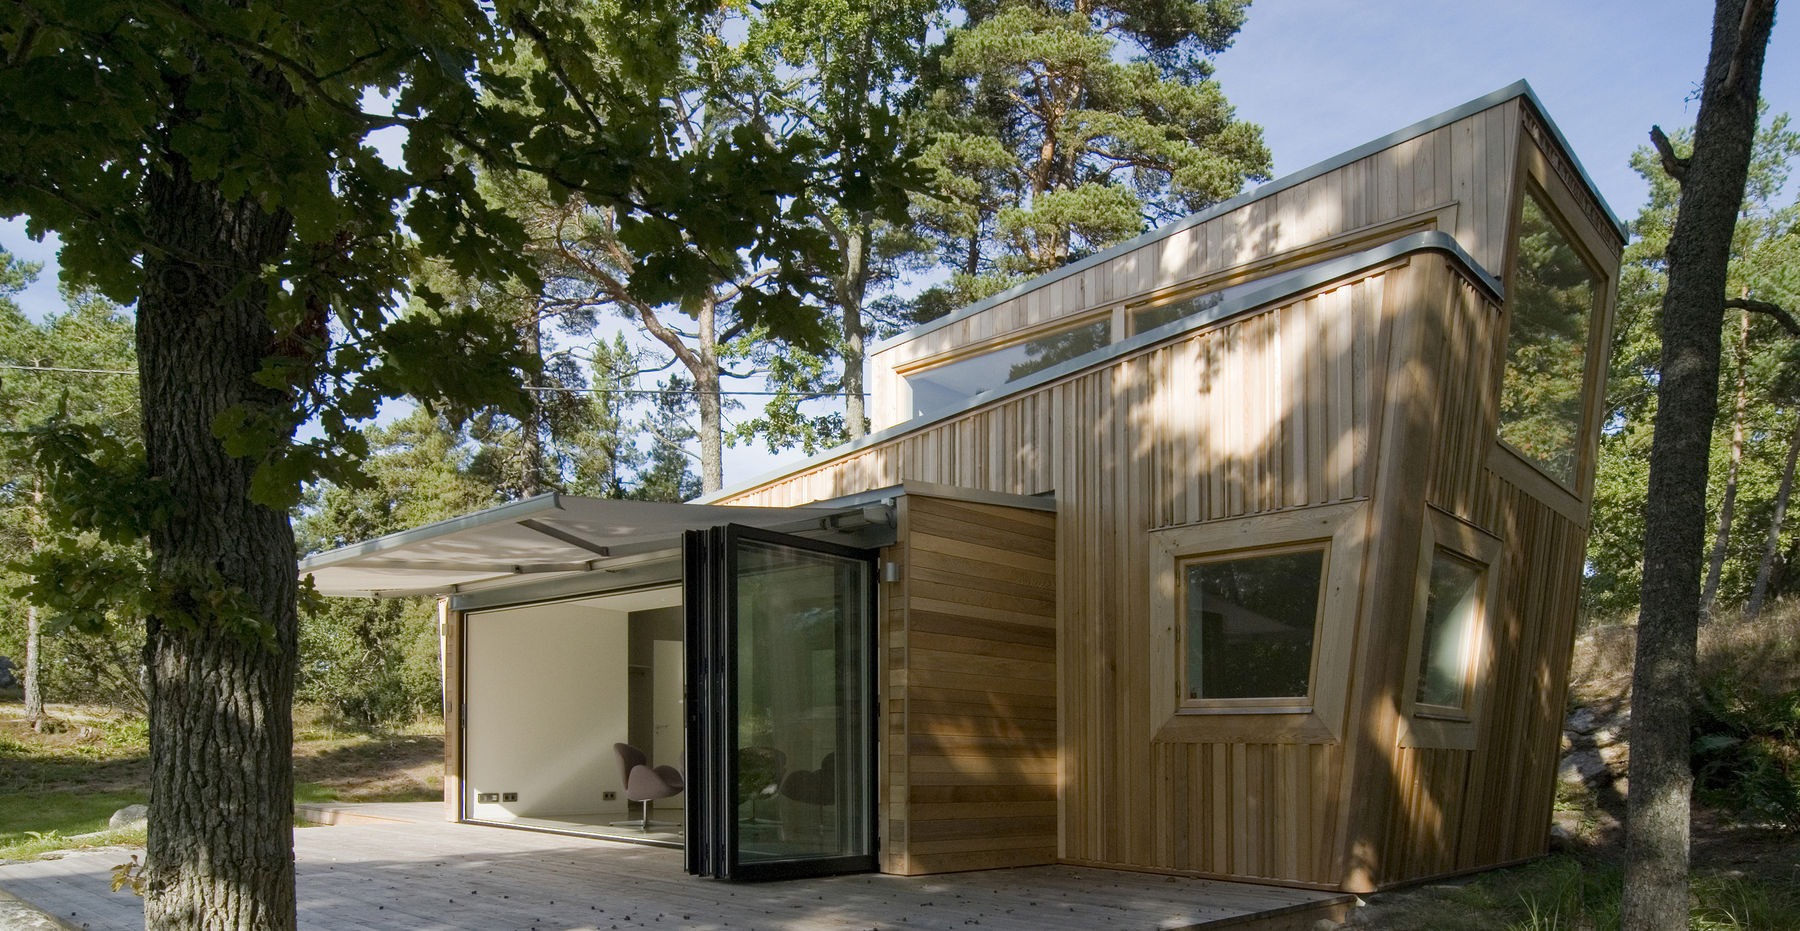 Sweden Houses Design Gallery A Low Impact Modern Cabin In Sweden Schlyter Gezelius